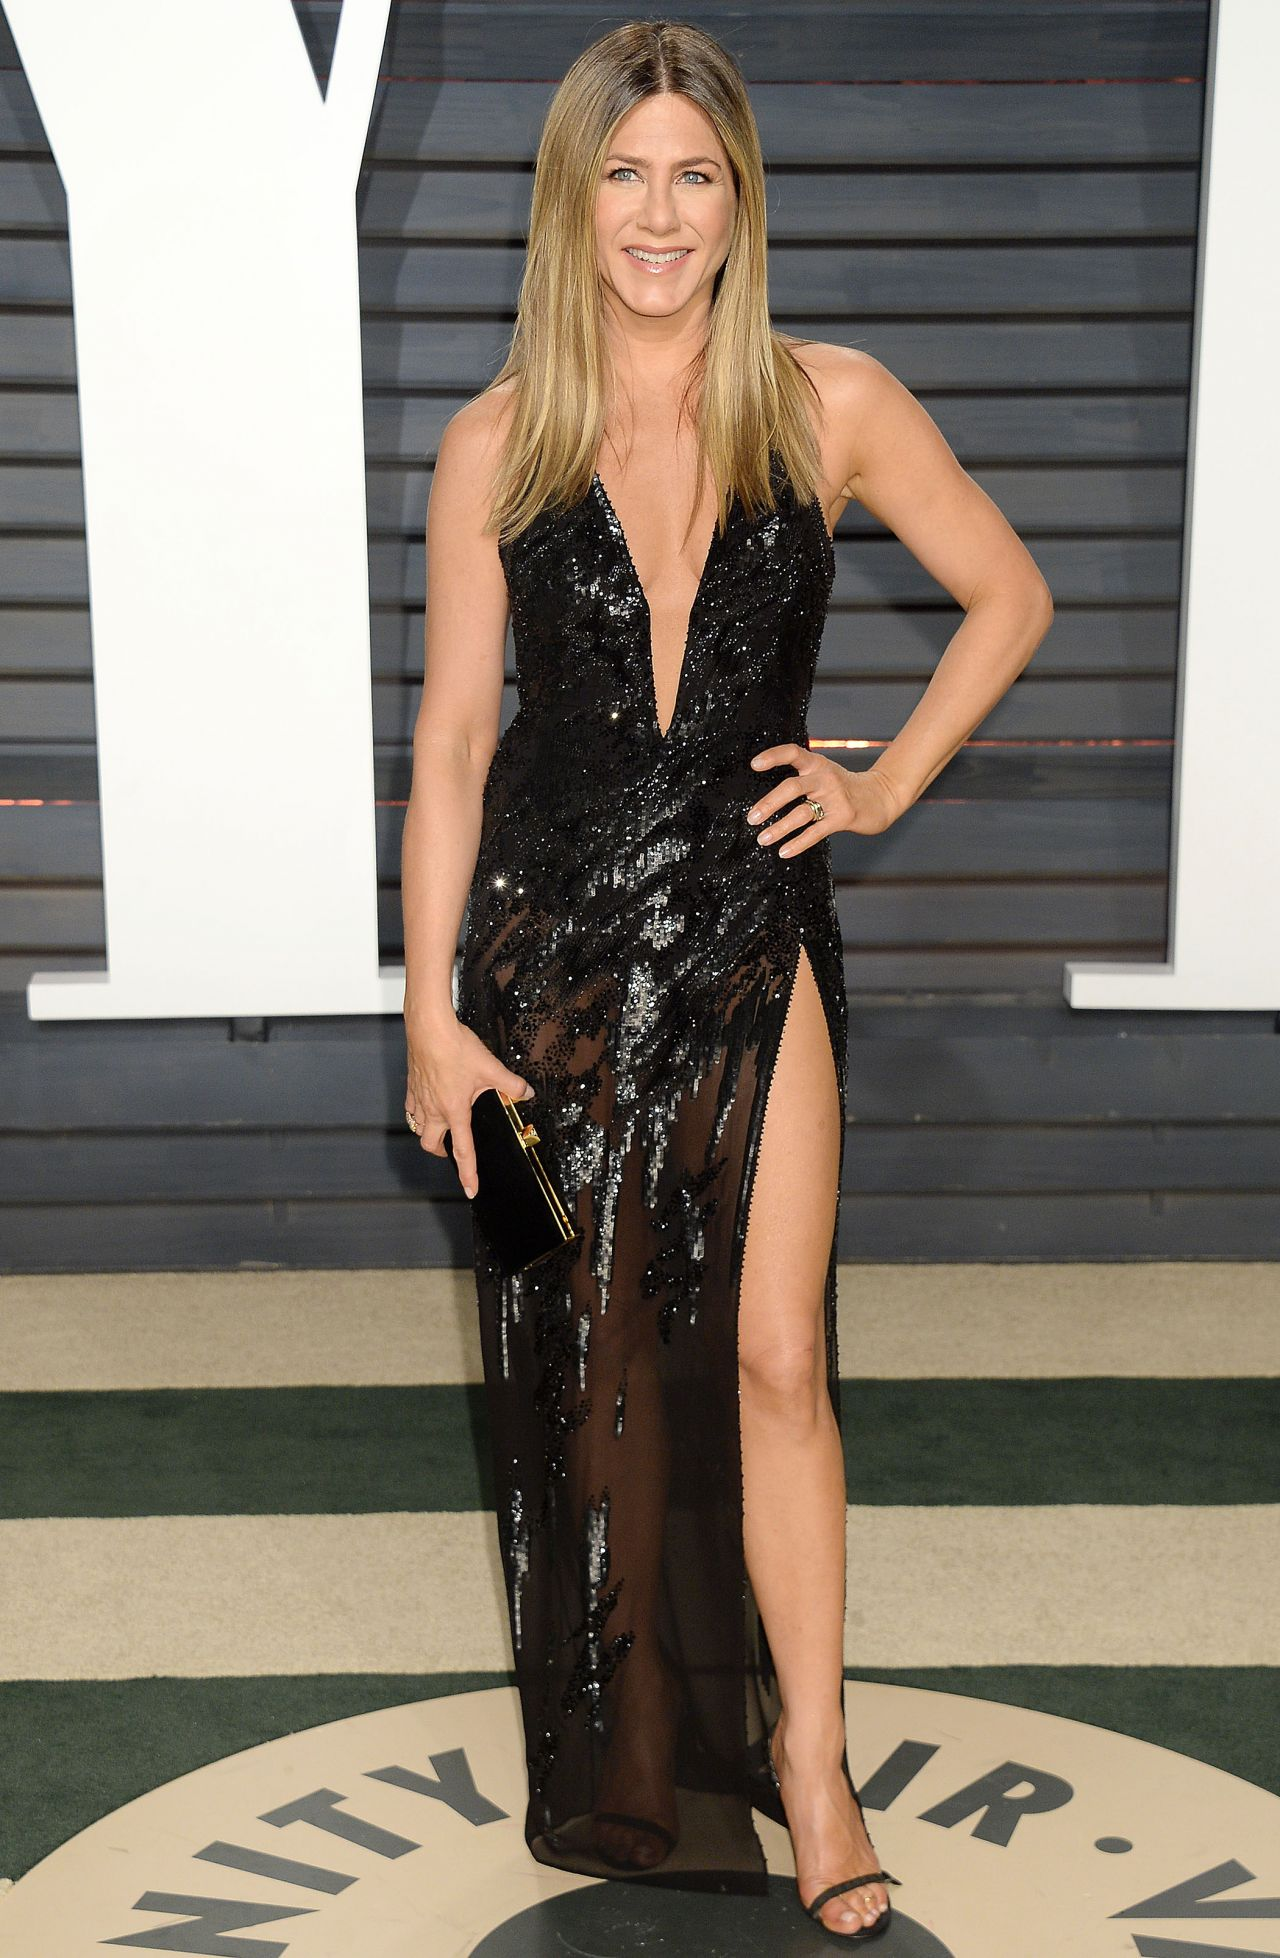 Jennifer Aniston At Vanity Fair Oscar 2017 Party In Los